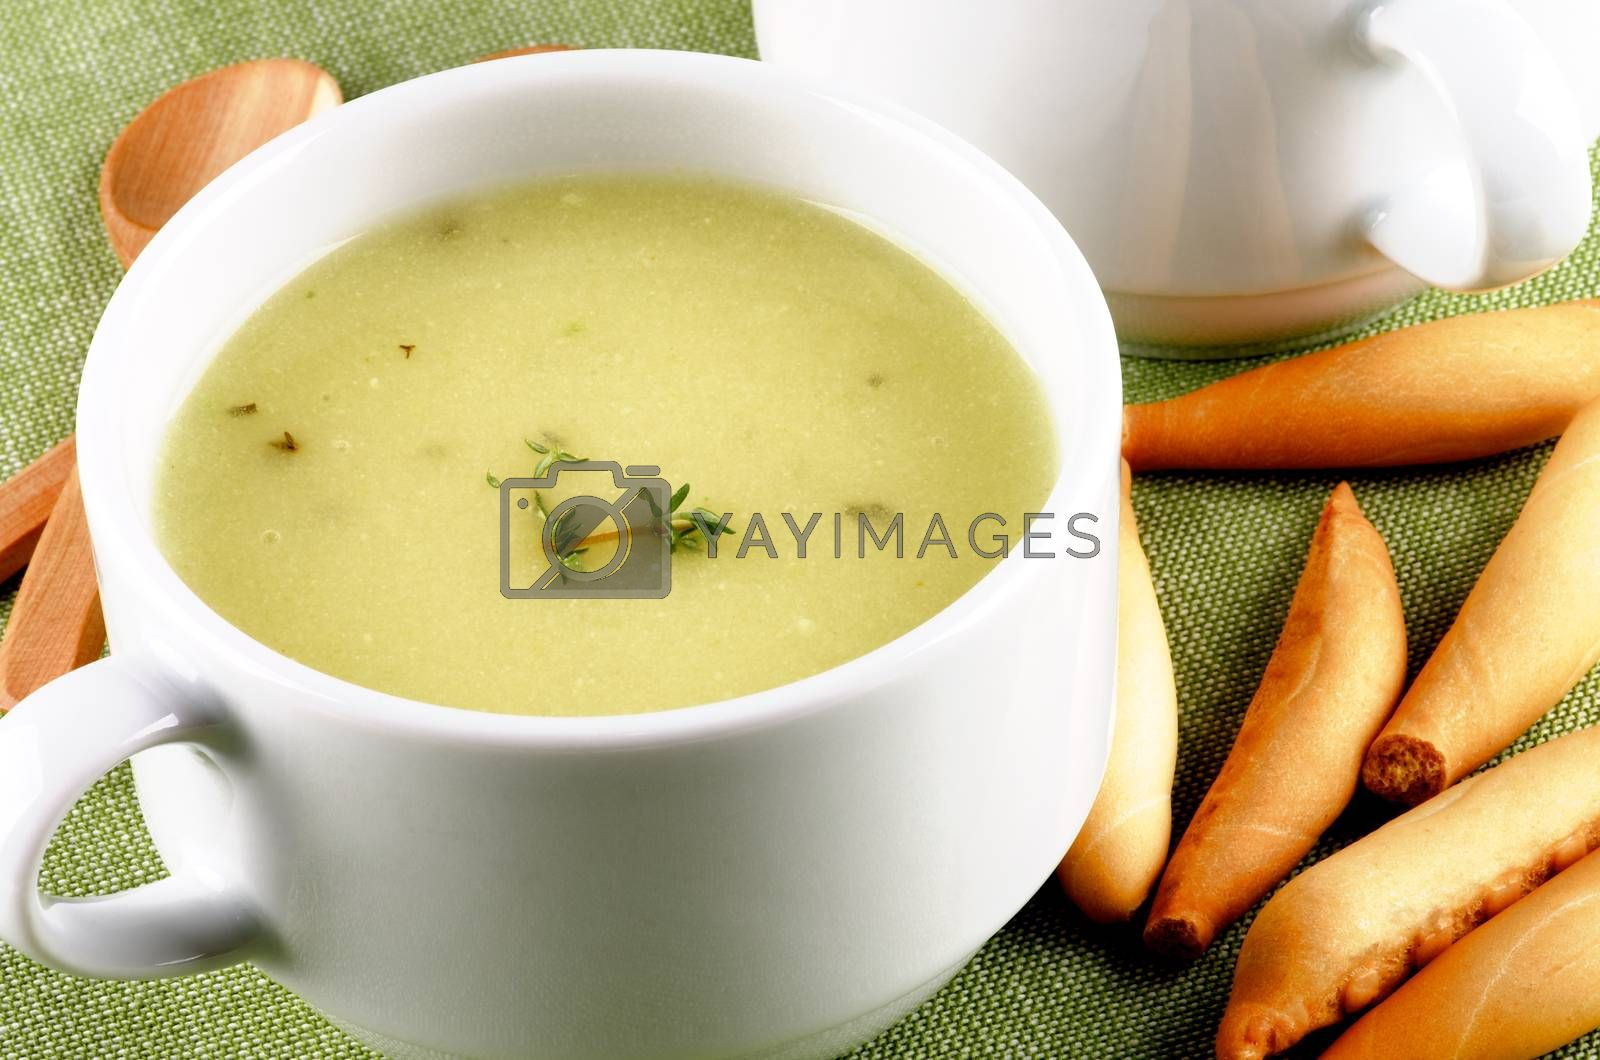 Delicious Cream Asparagus Soup in White Soup Cup with Bread Sticks and Wooden Spoon closeup on Green Napkin